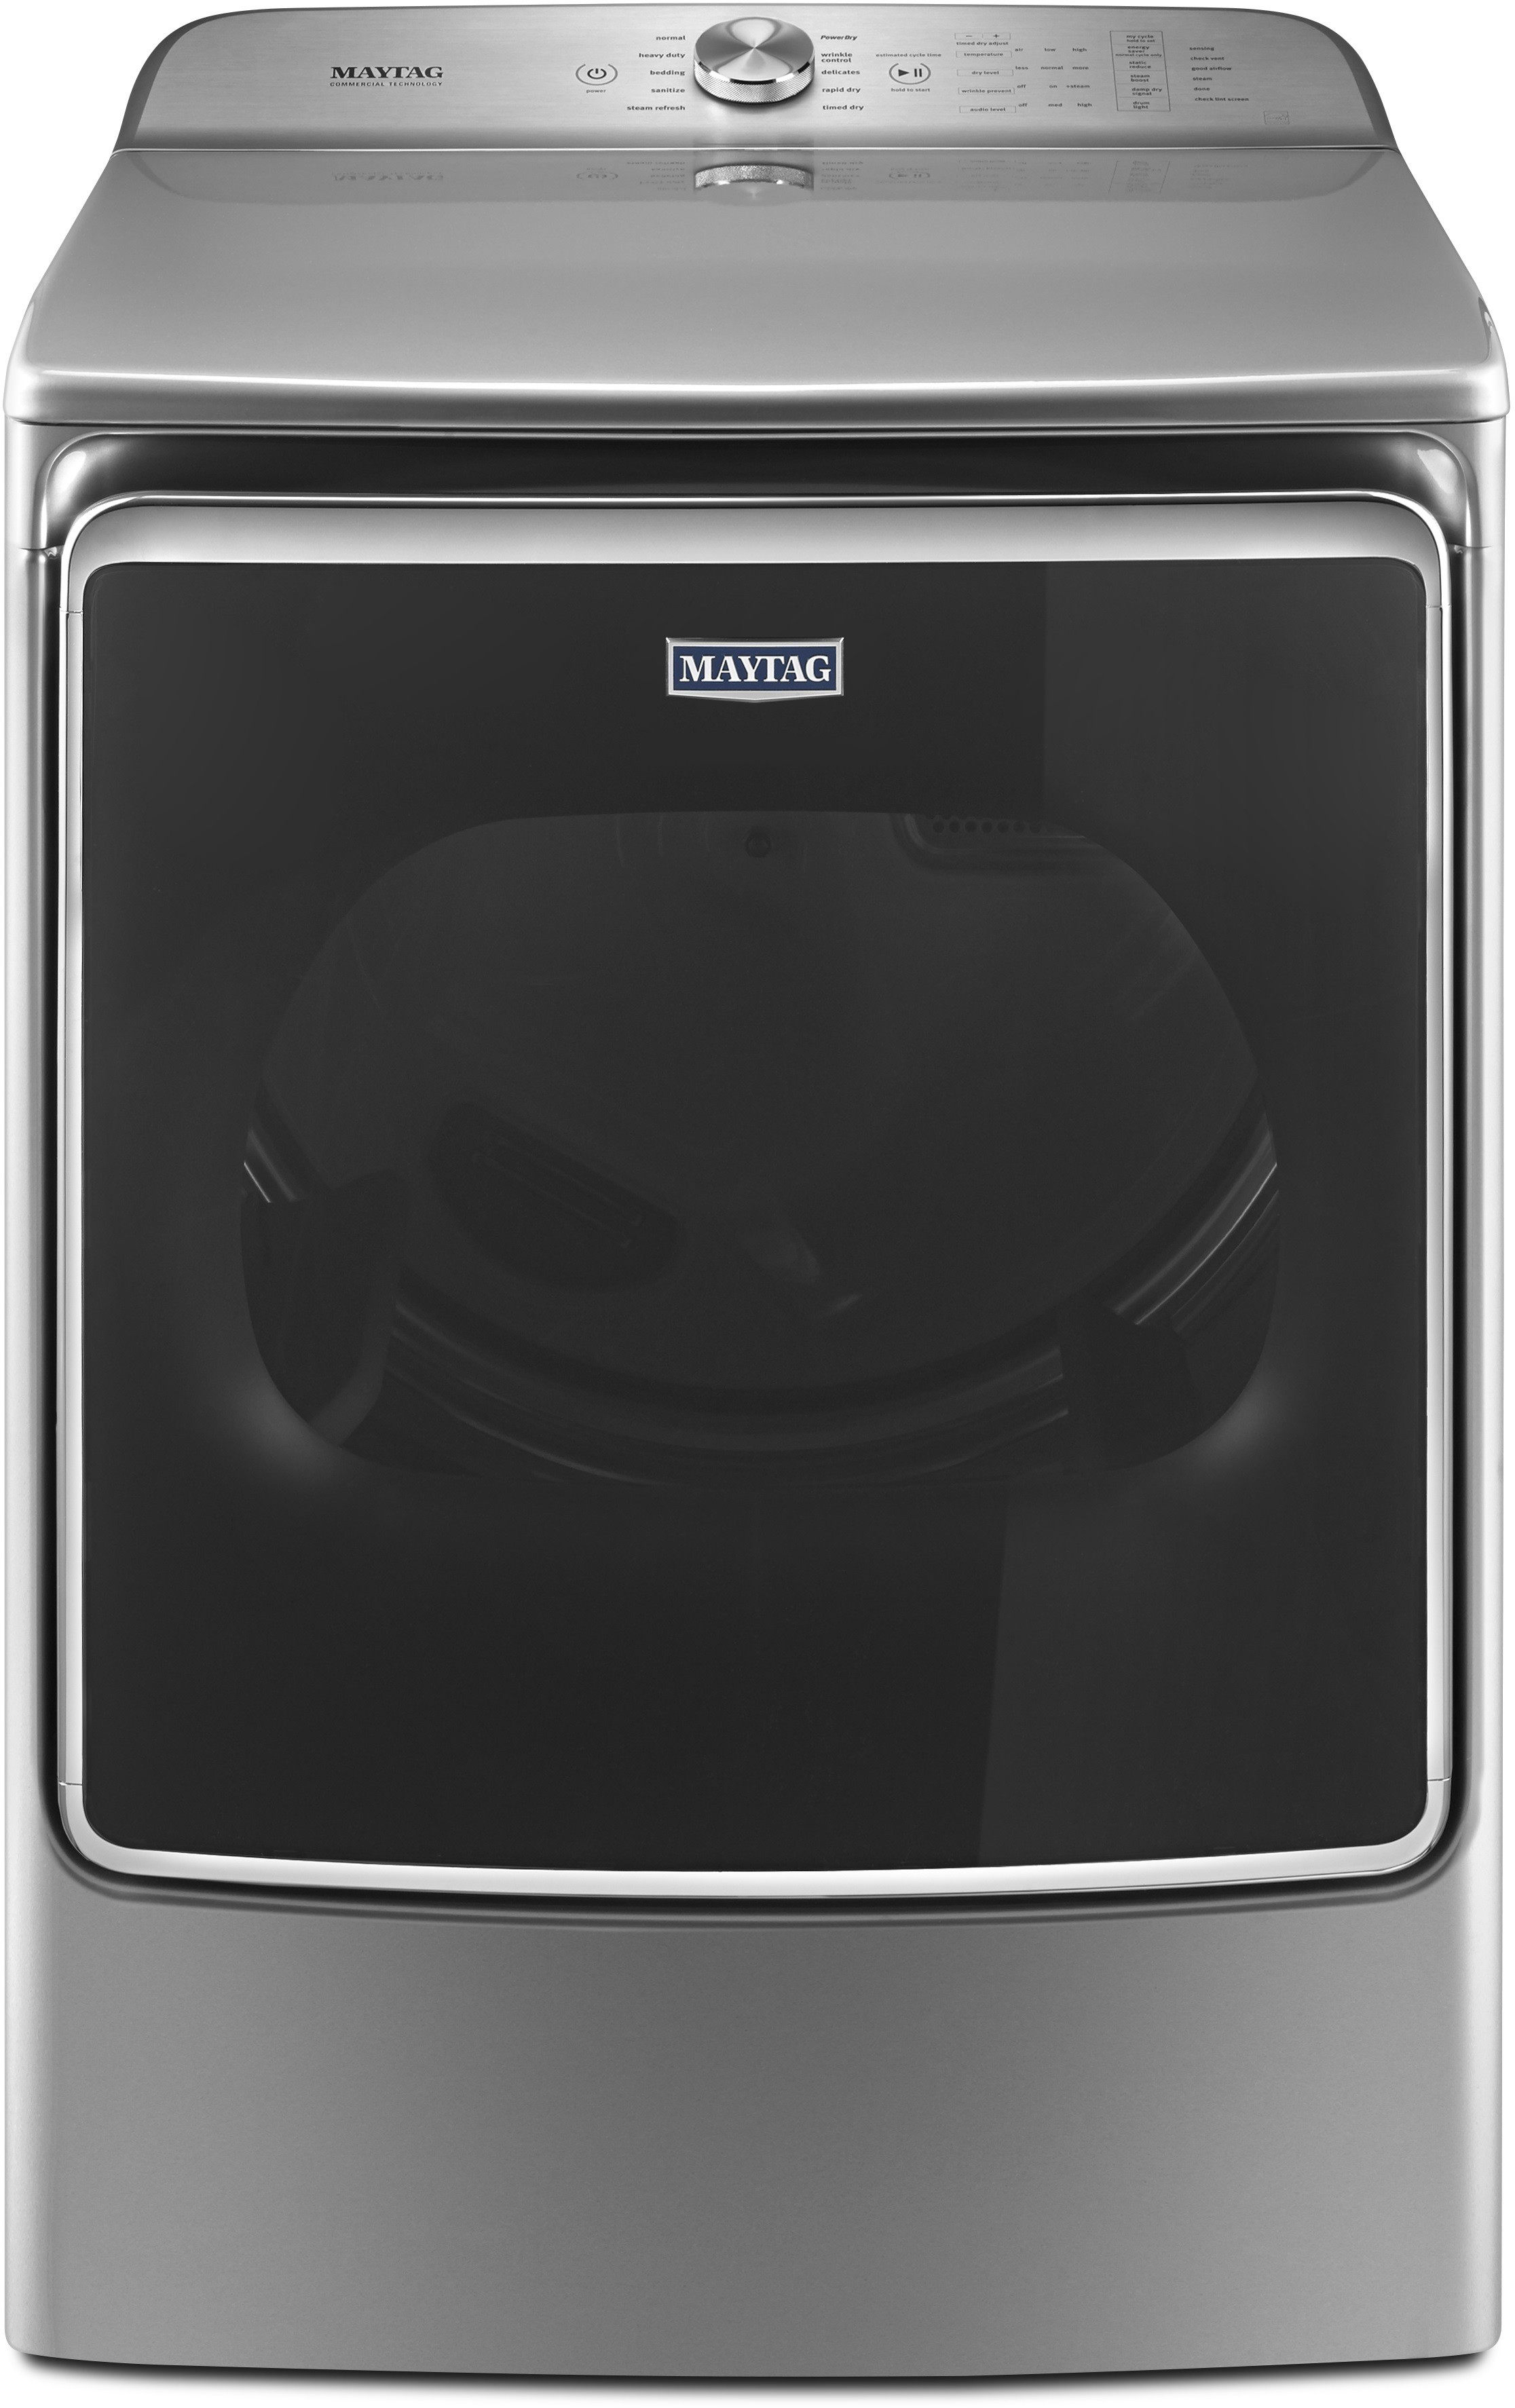 maytag mgdb955fc 29 inch gas dryer with 9 2 cu ft capacity steam 10 dry cycle selections. Black Bedroom Furniture Sets. Home Design Ideas